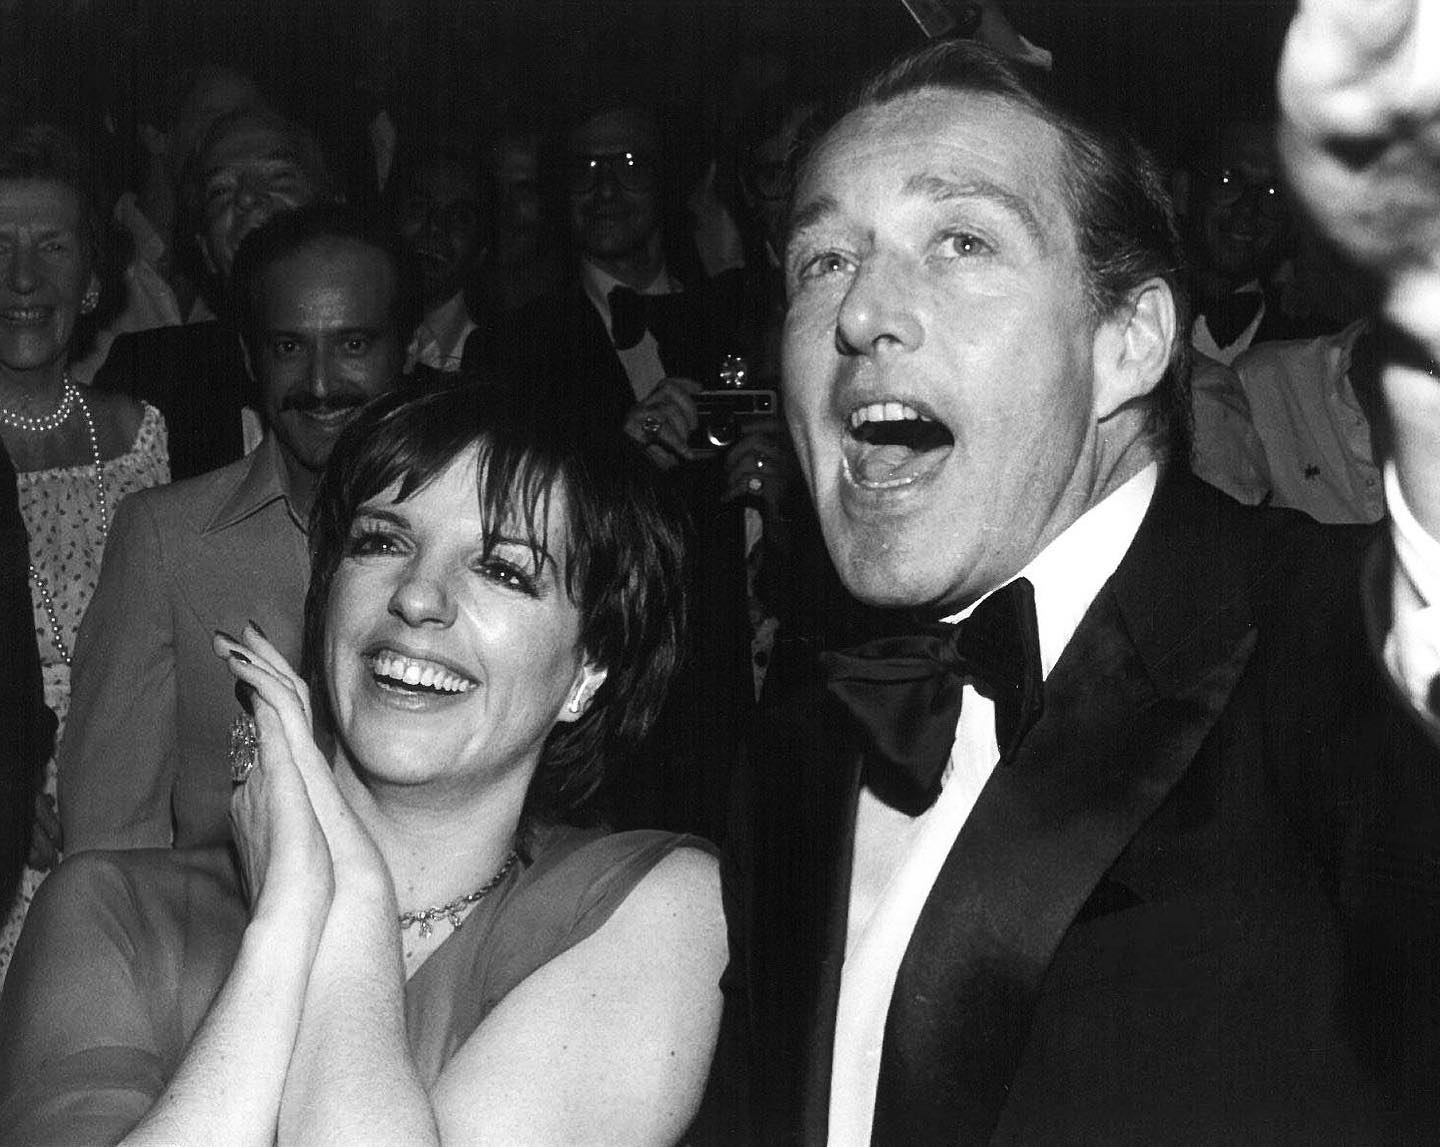 """""""From that time, I never did a show or went to a party — or threw one — without him guiding me. Every show I did, I performed in his living room first. In him there was tastefulness, style, and simplicity.""""  Liza Minnelli met fashion designer Halston when she was 20 years old, and the two hit it off immediately, sparking a lifelong friendship. We're putting the spotlight on them today for #InternationalDayofFriendship.  Once Minnelli and Halston met, Halston dressed her for all of her events, and Minnelli would often perform at his. Just one of the notable designs Halston put on Minnelli was the all-yellow ensemble she wore to the 1973 Oscars, where she accepted the """"Best Actress"""" award for her role in Cabaret. She also performed the song """"Bonjour Paris!"""" at the Battle of Versailles fashion show, in which 5 American designers including Halston faced off against 5 French designers, in one of the first instances of American designers showing their work in France.  Even after Halston was deposed from his company, the two remained close. They were inseparable right until the time of Halston's passing in 1990, due to AIDs-related cancer. To this day, Minnelli holds their friendship close to her heart, and refuses to give Halston anything but praise in the public eye.  Halston's and Minnelli's stories have also recently been told in the Netflix series """"Halston"""", featuring Ewan McGregor as the designer, and Krysta Rodriguez as Minnelli.  Here, the two enjoy a party at Studio 54 in New York City. which they habitually frequented together. Shot by Allan Tannenbaum @soho_blues.  © Allan Tannenbaum//MUUS Collection"""